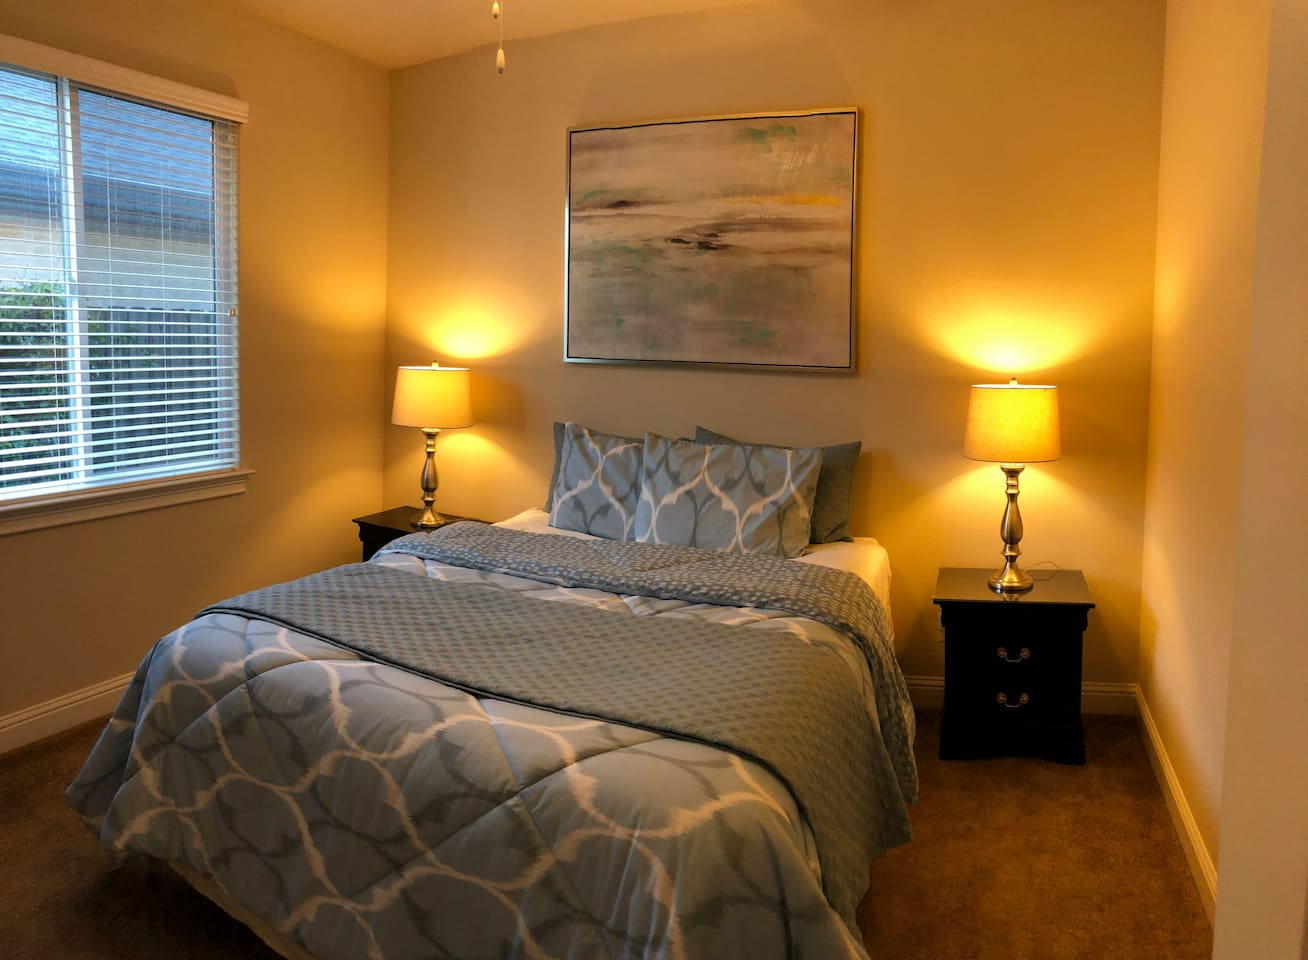 Quiet and secluded roomful 1 or 2 people with comfortable queen bed and quality linens.